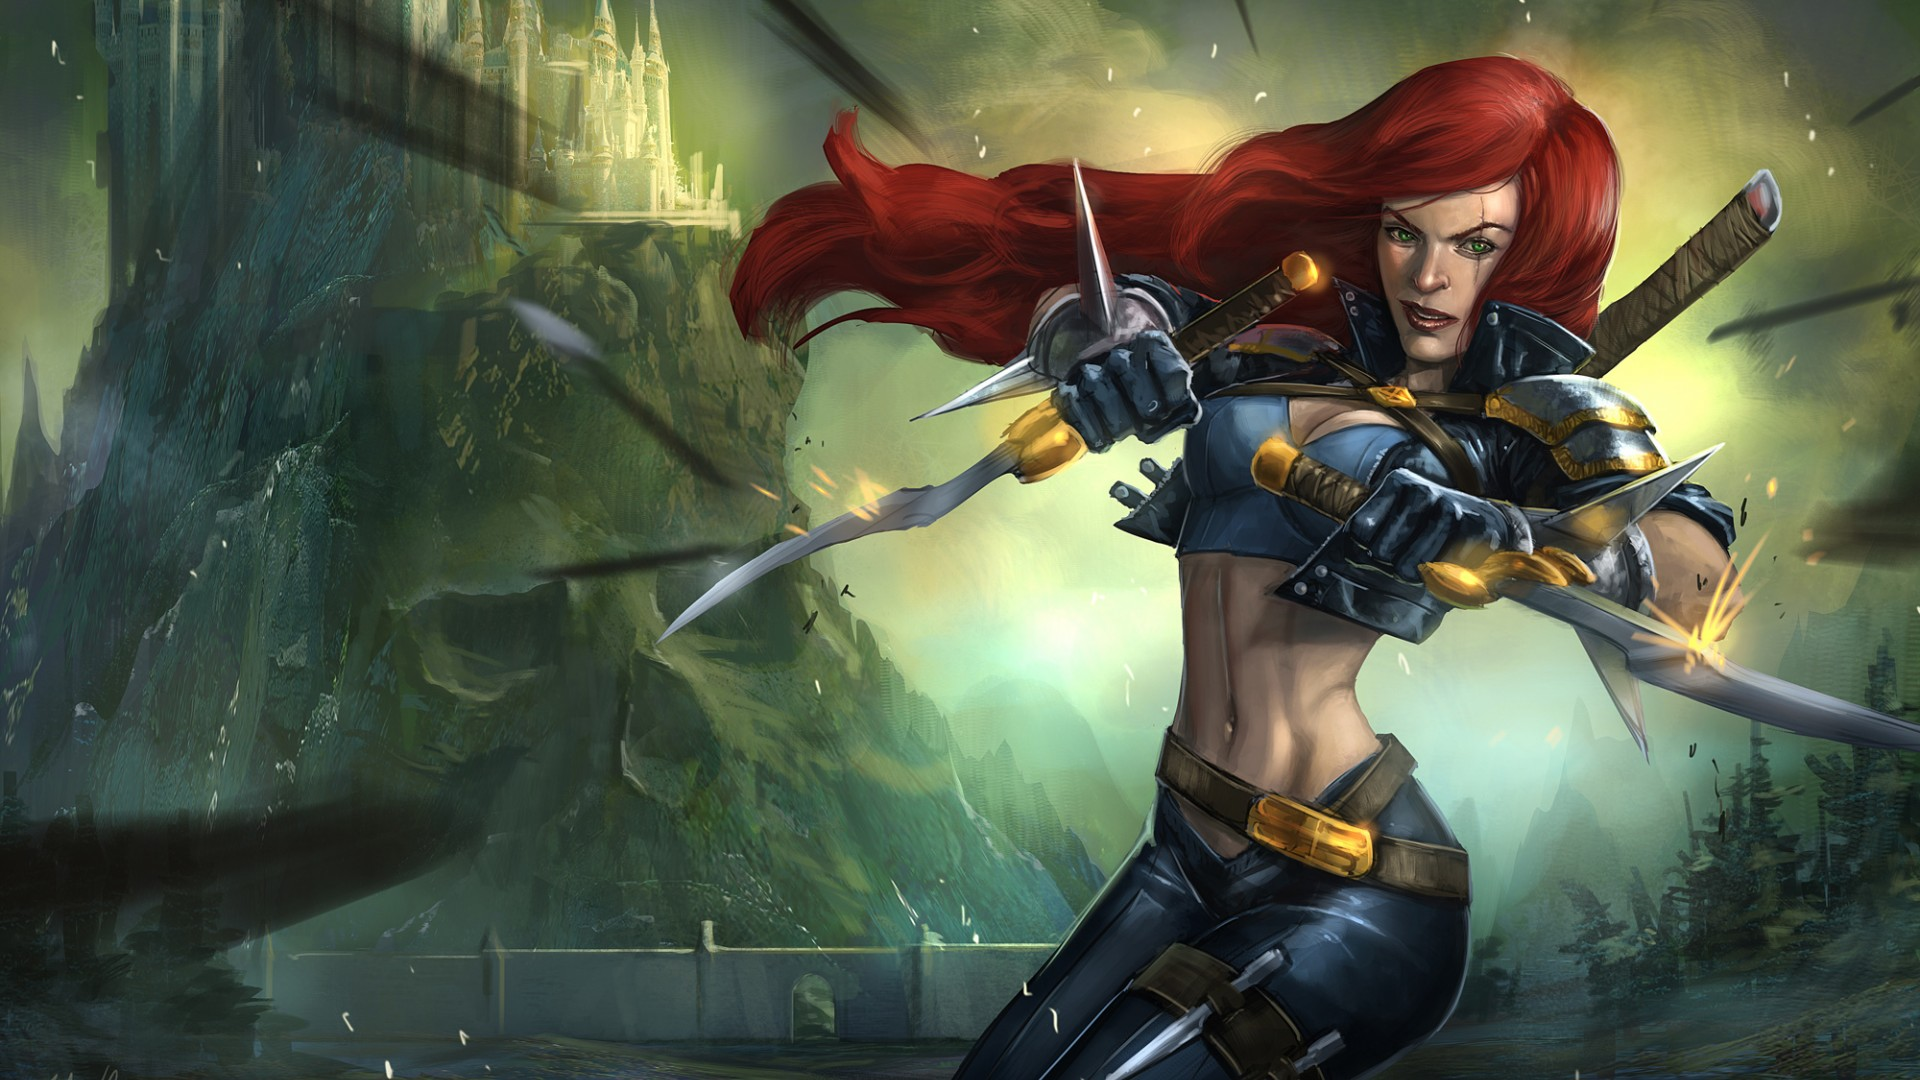 Katarina League Of Legends Wallpaper Hd League Of Legends